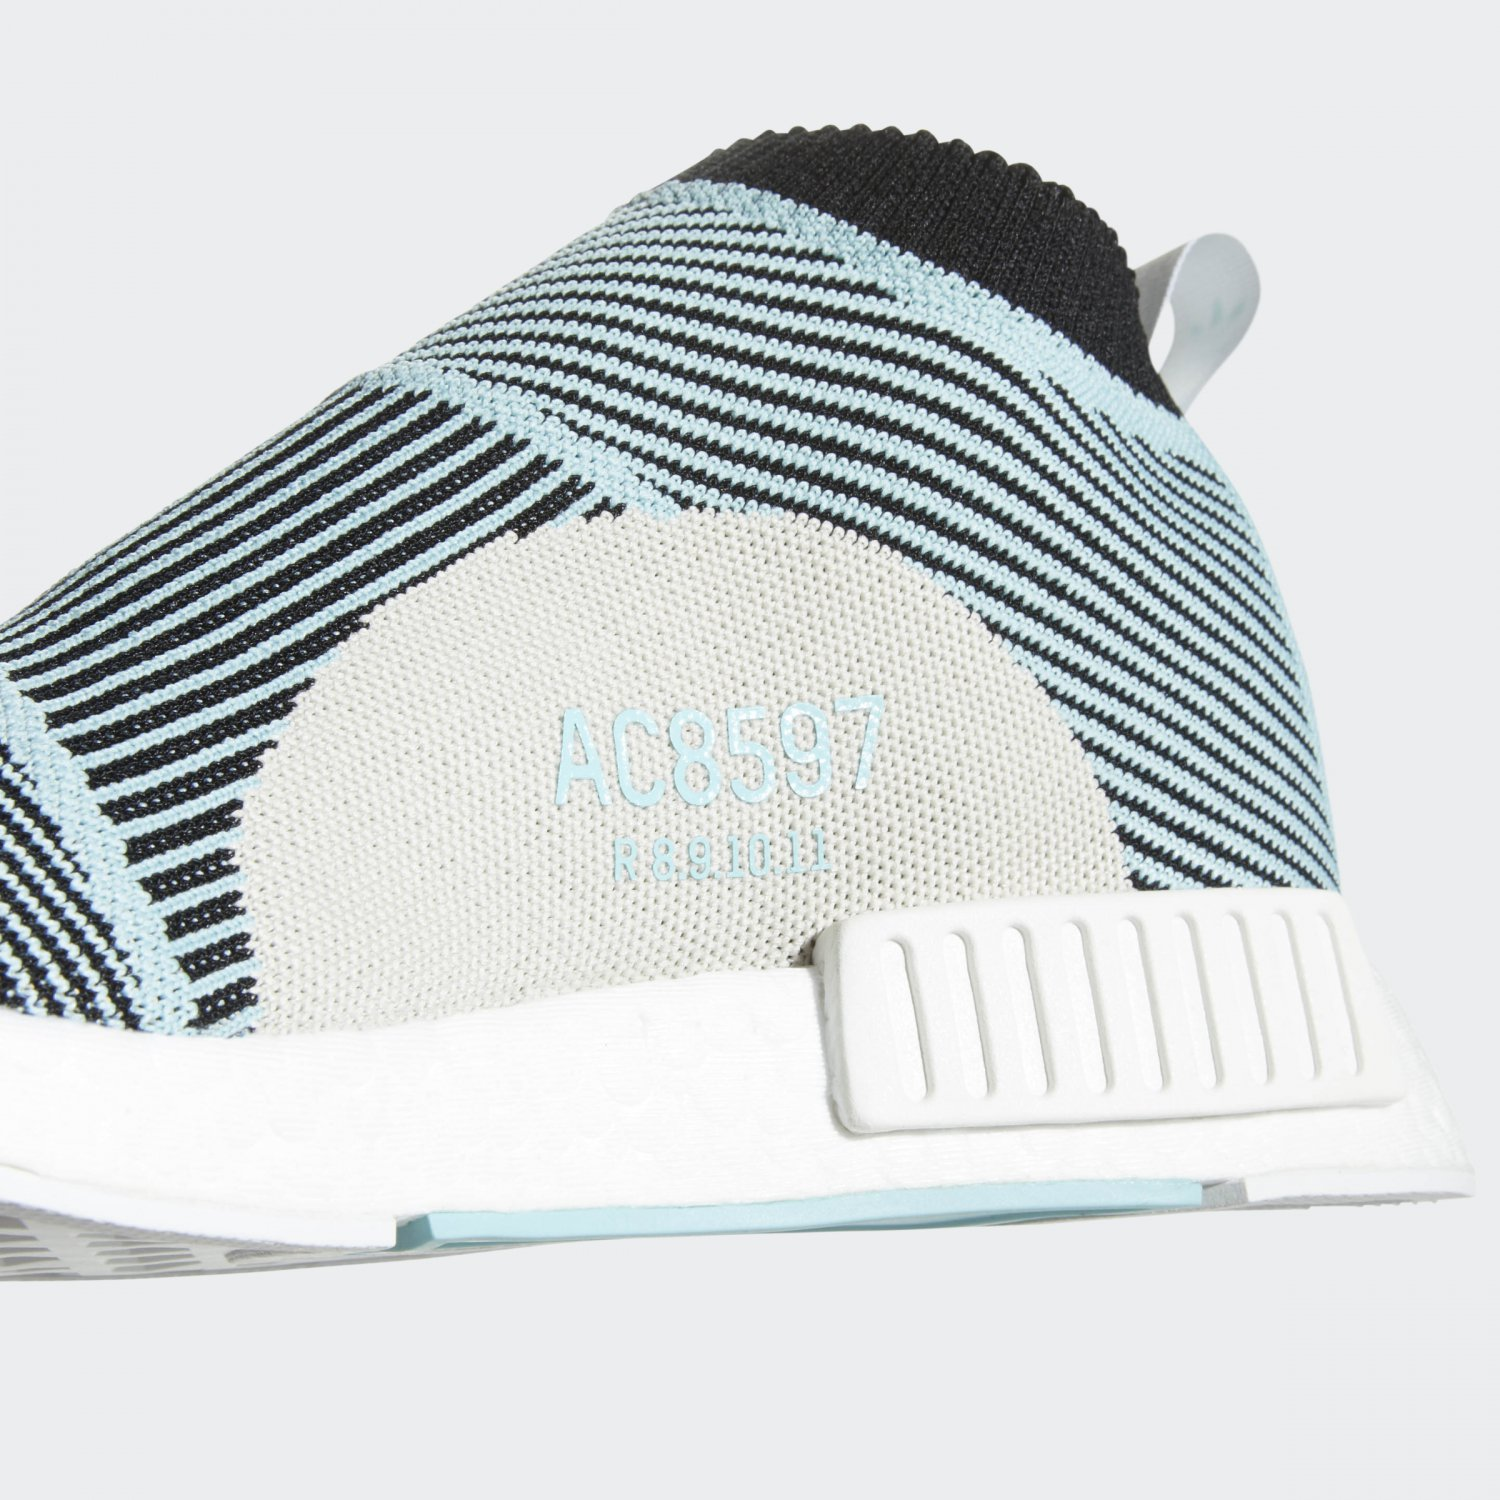 adidas-nmd-cs1-parley-pk-ac8597-release-20180310